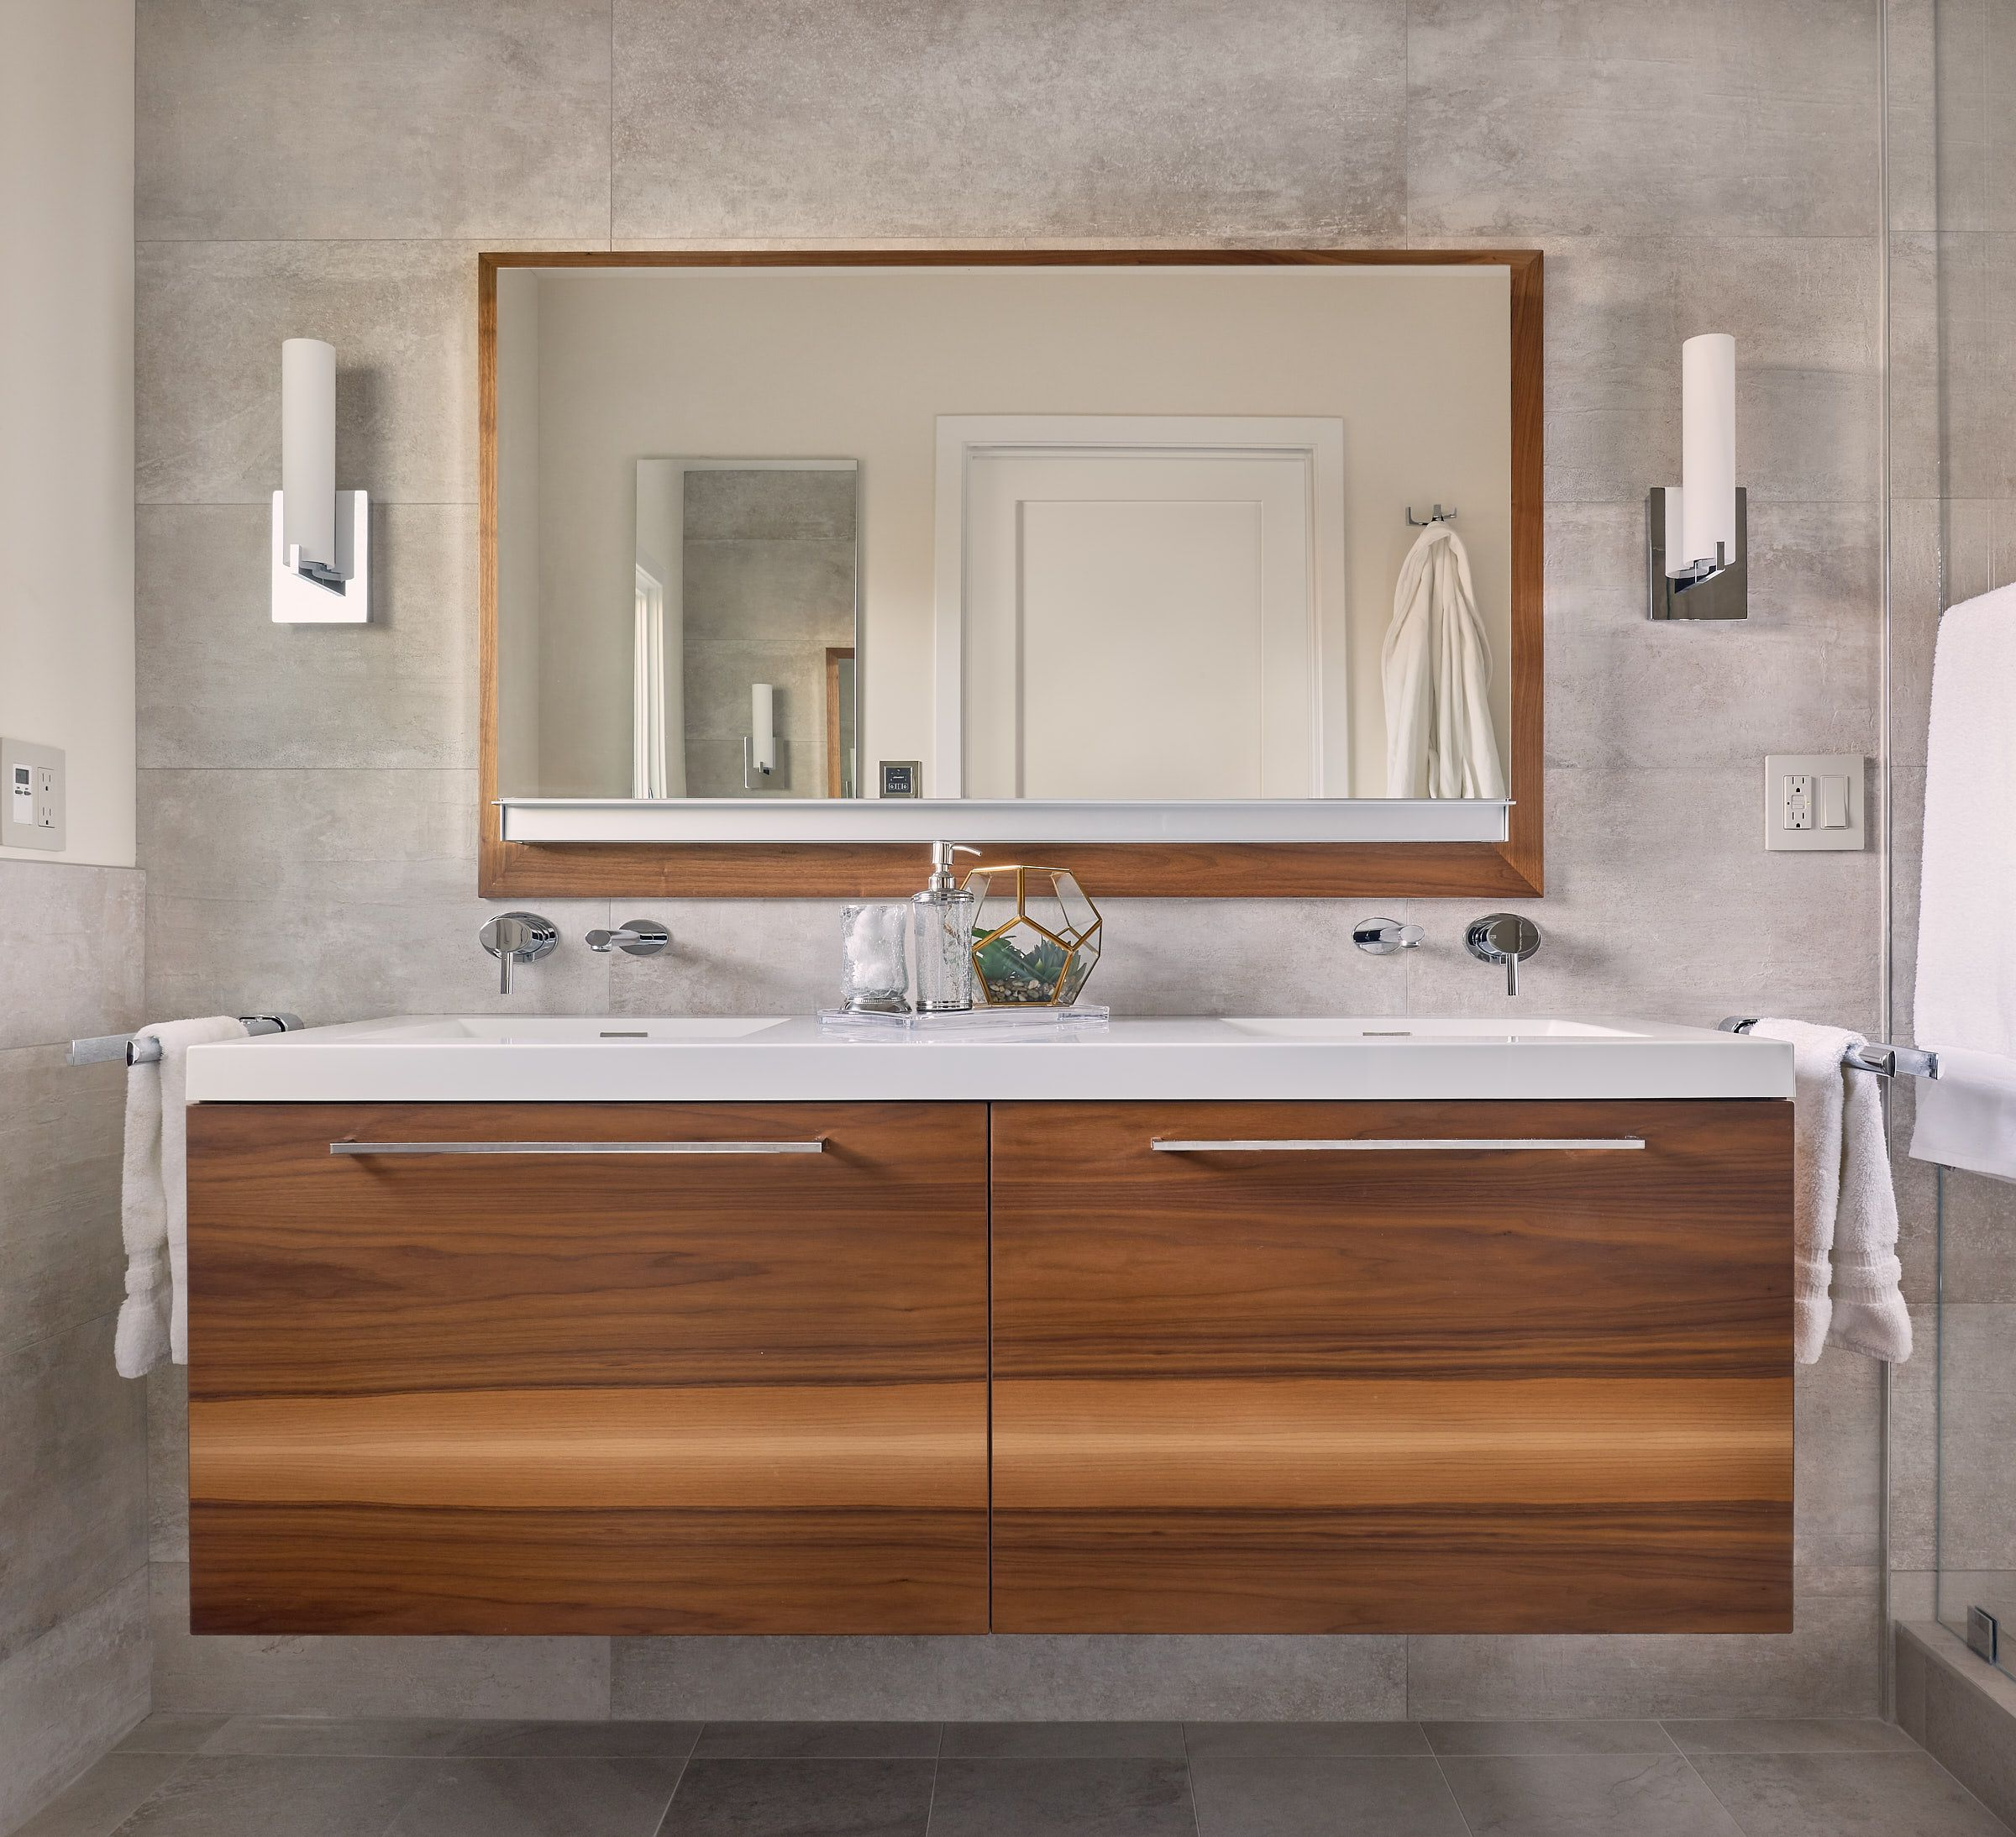 Bowed Vessel Sinks Hug And Soften Weighty Rectilinear Shapes Black Free Standing Vanities Mirror Frames Enrich The Sleekness Of Design